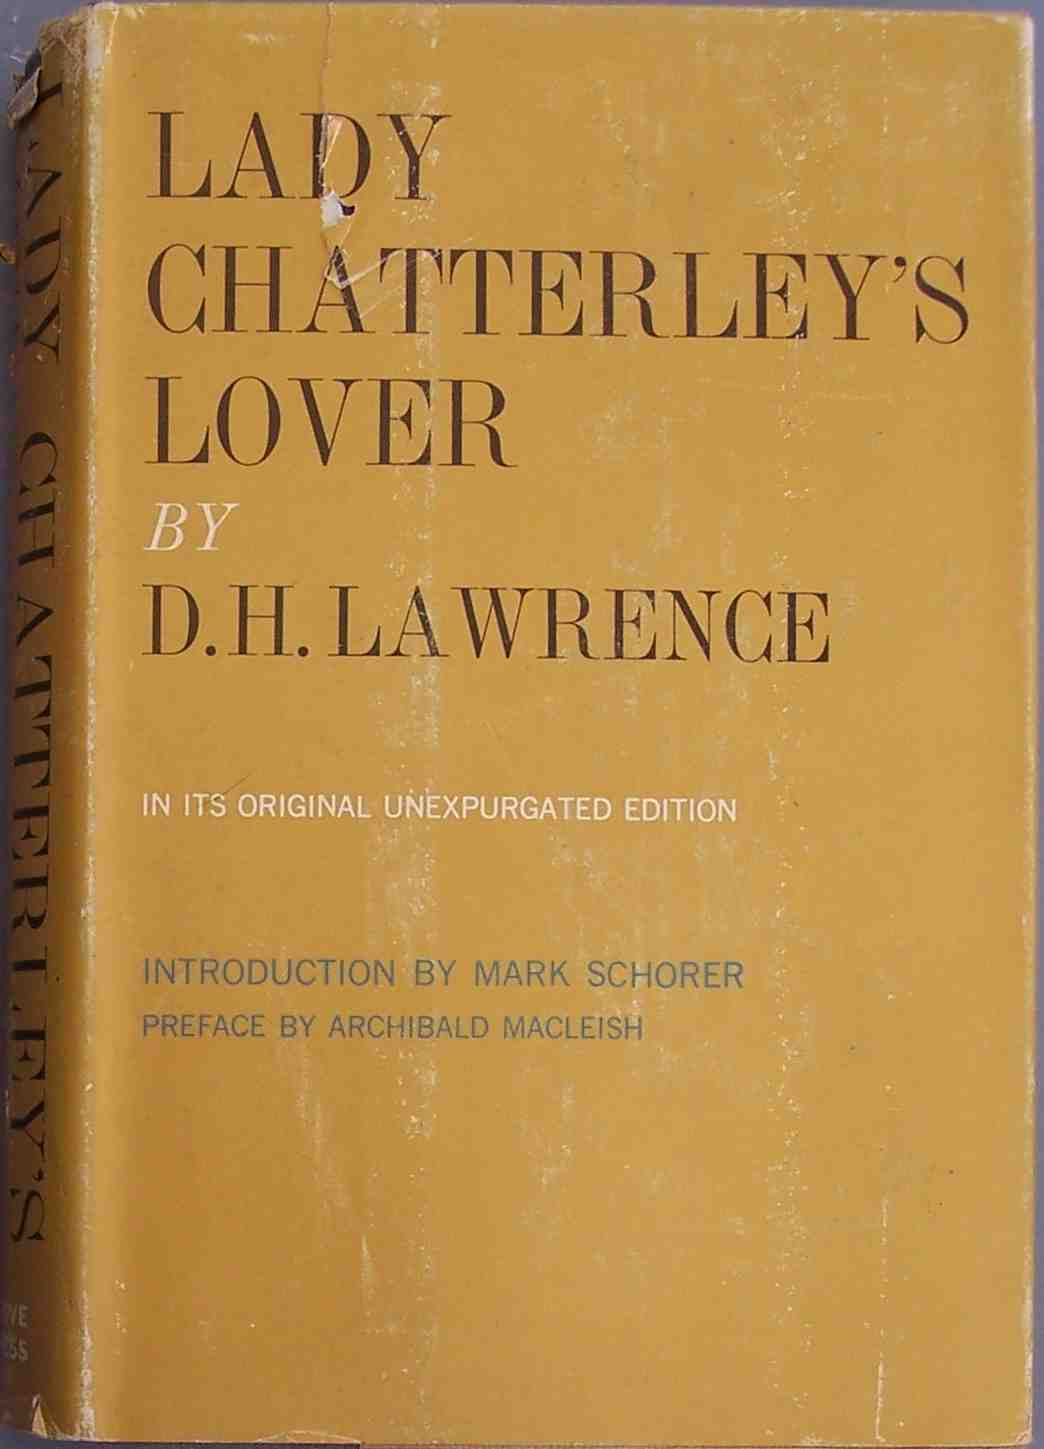 lady-chatterley-hardback-intro-mark-schorer-new-york-grove-press-1959-first-edition